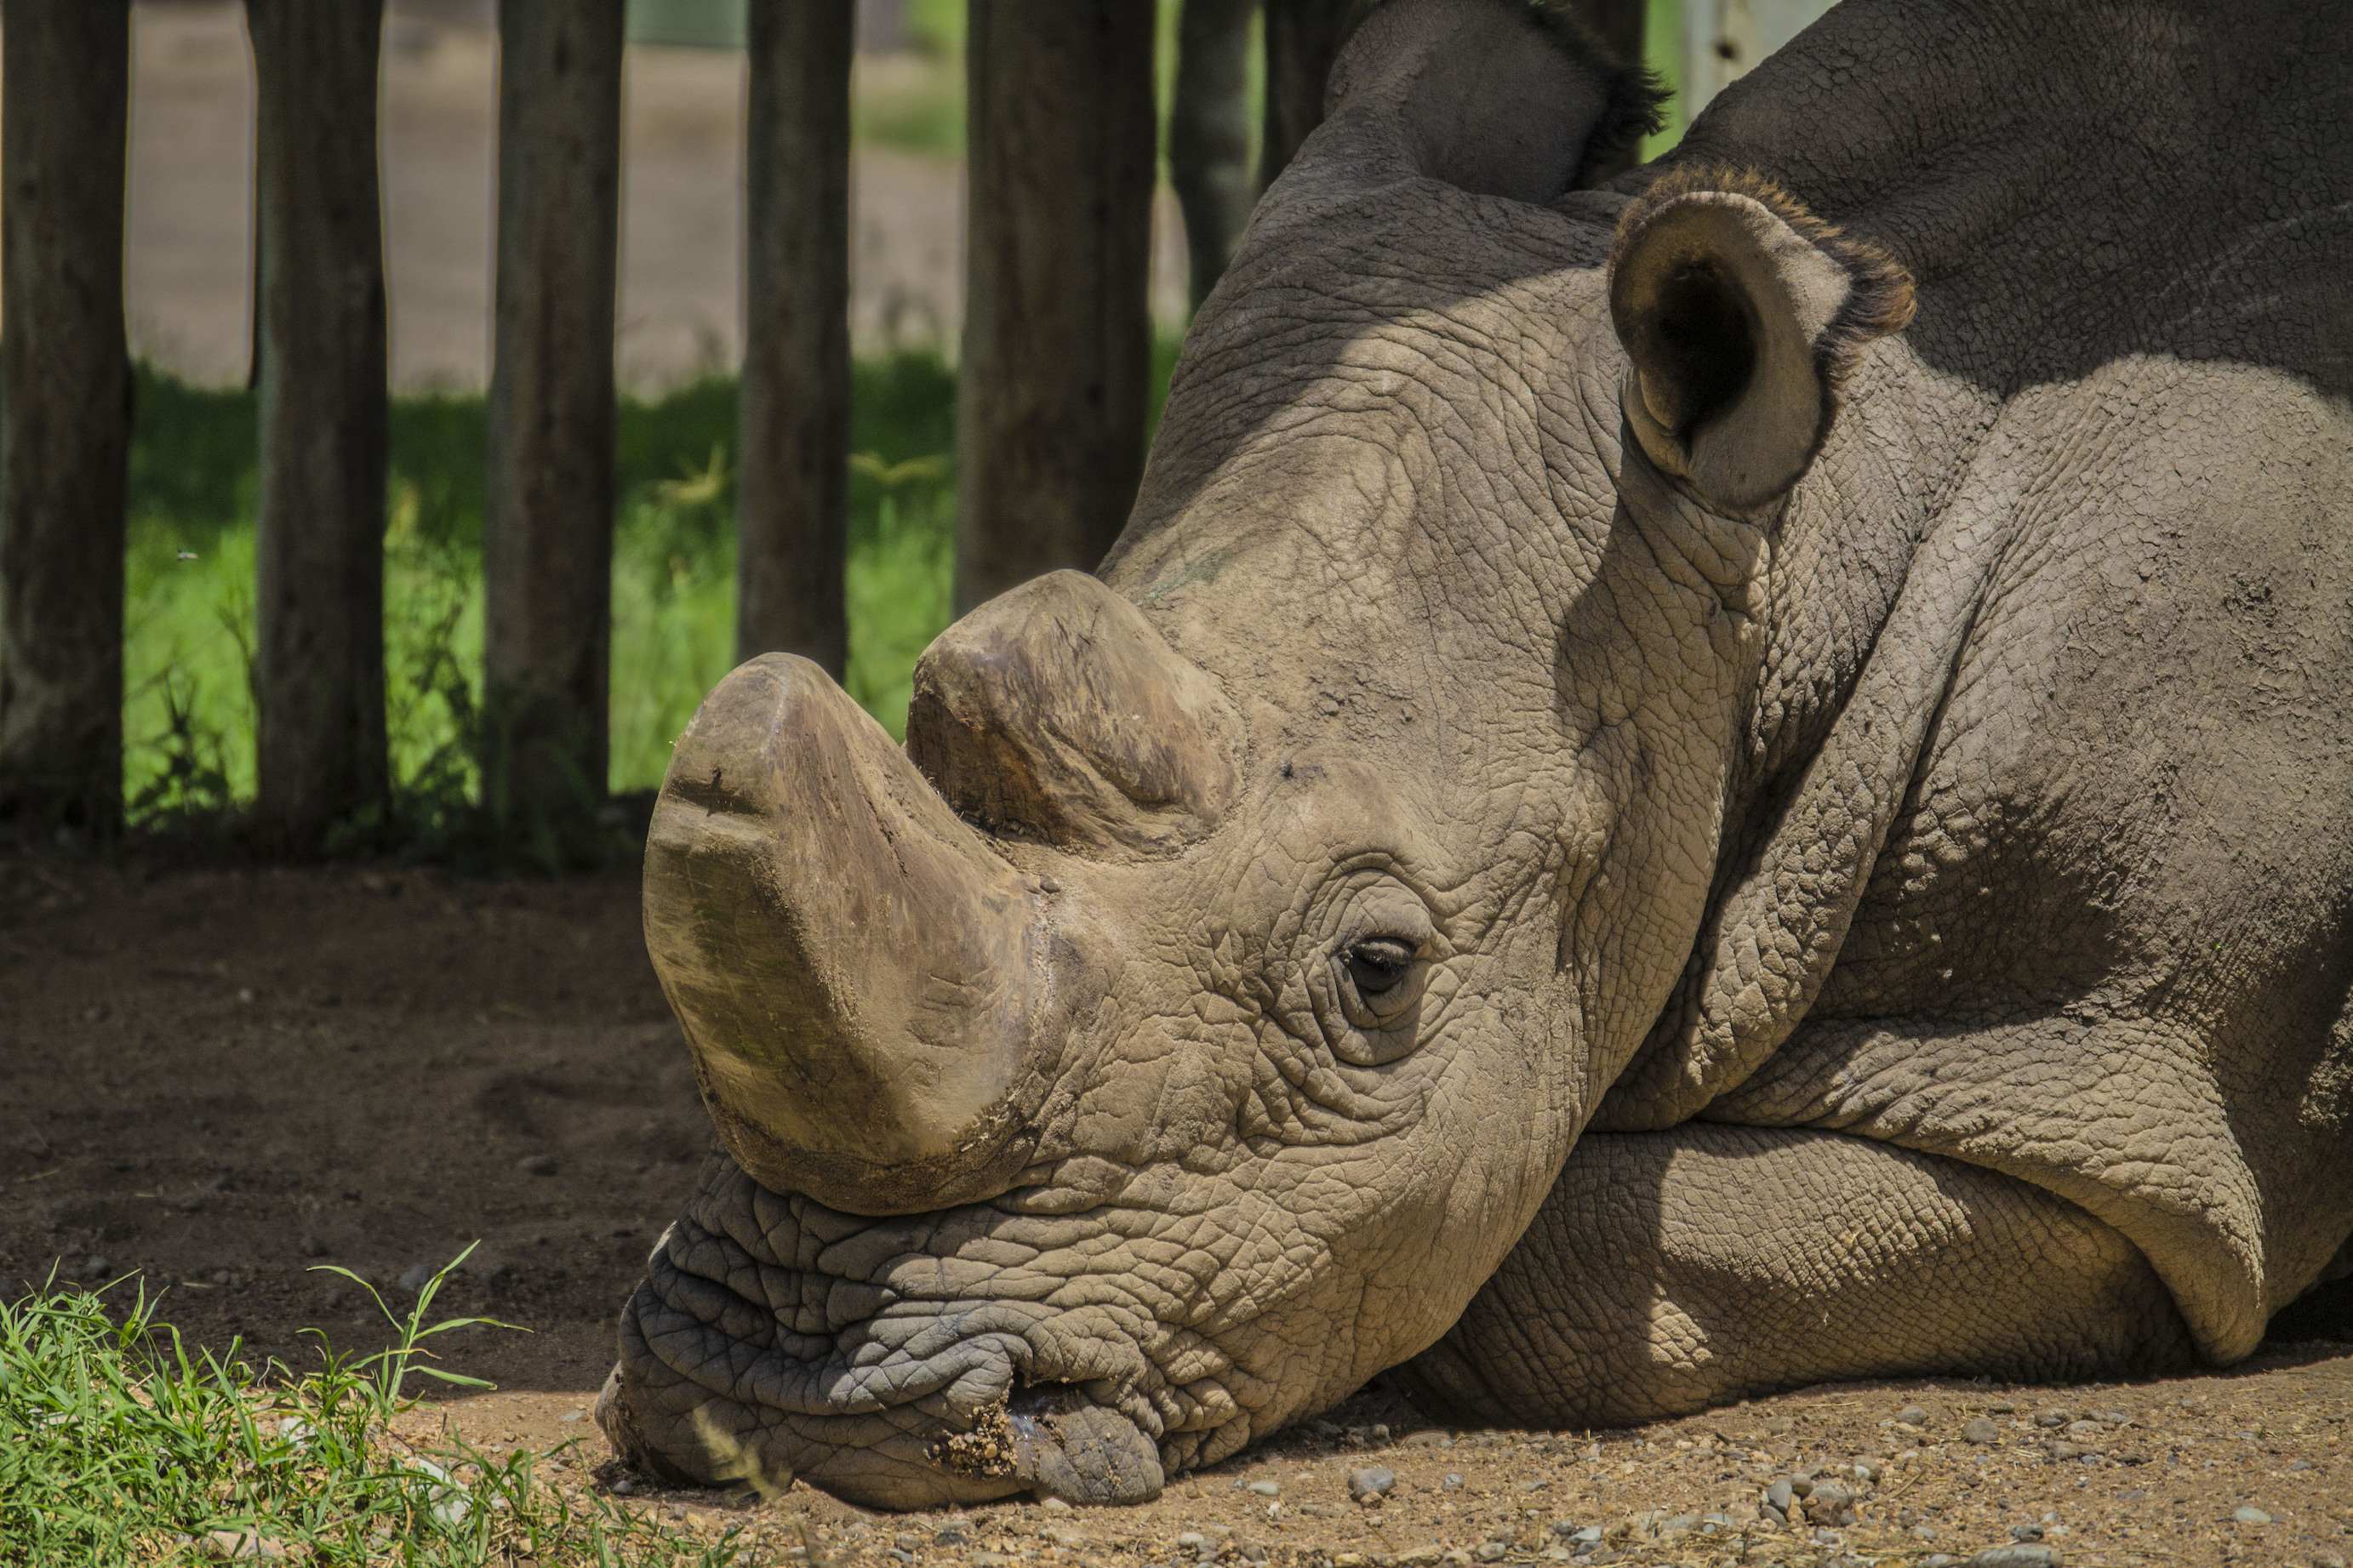 Scientists are scrambling to save the northern white rhino species after the last known male of the subspecies died on Monday.